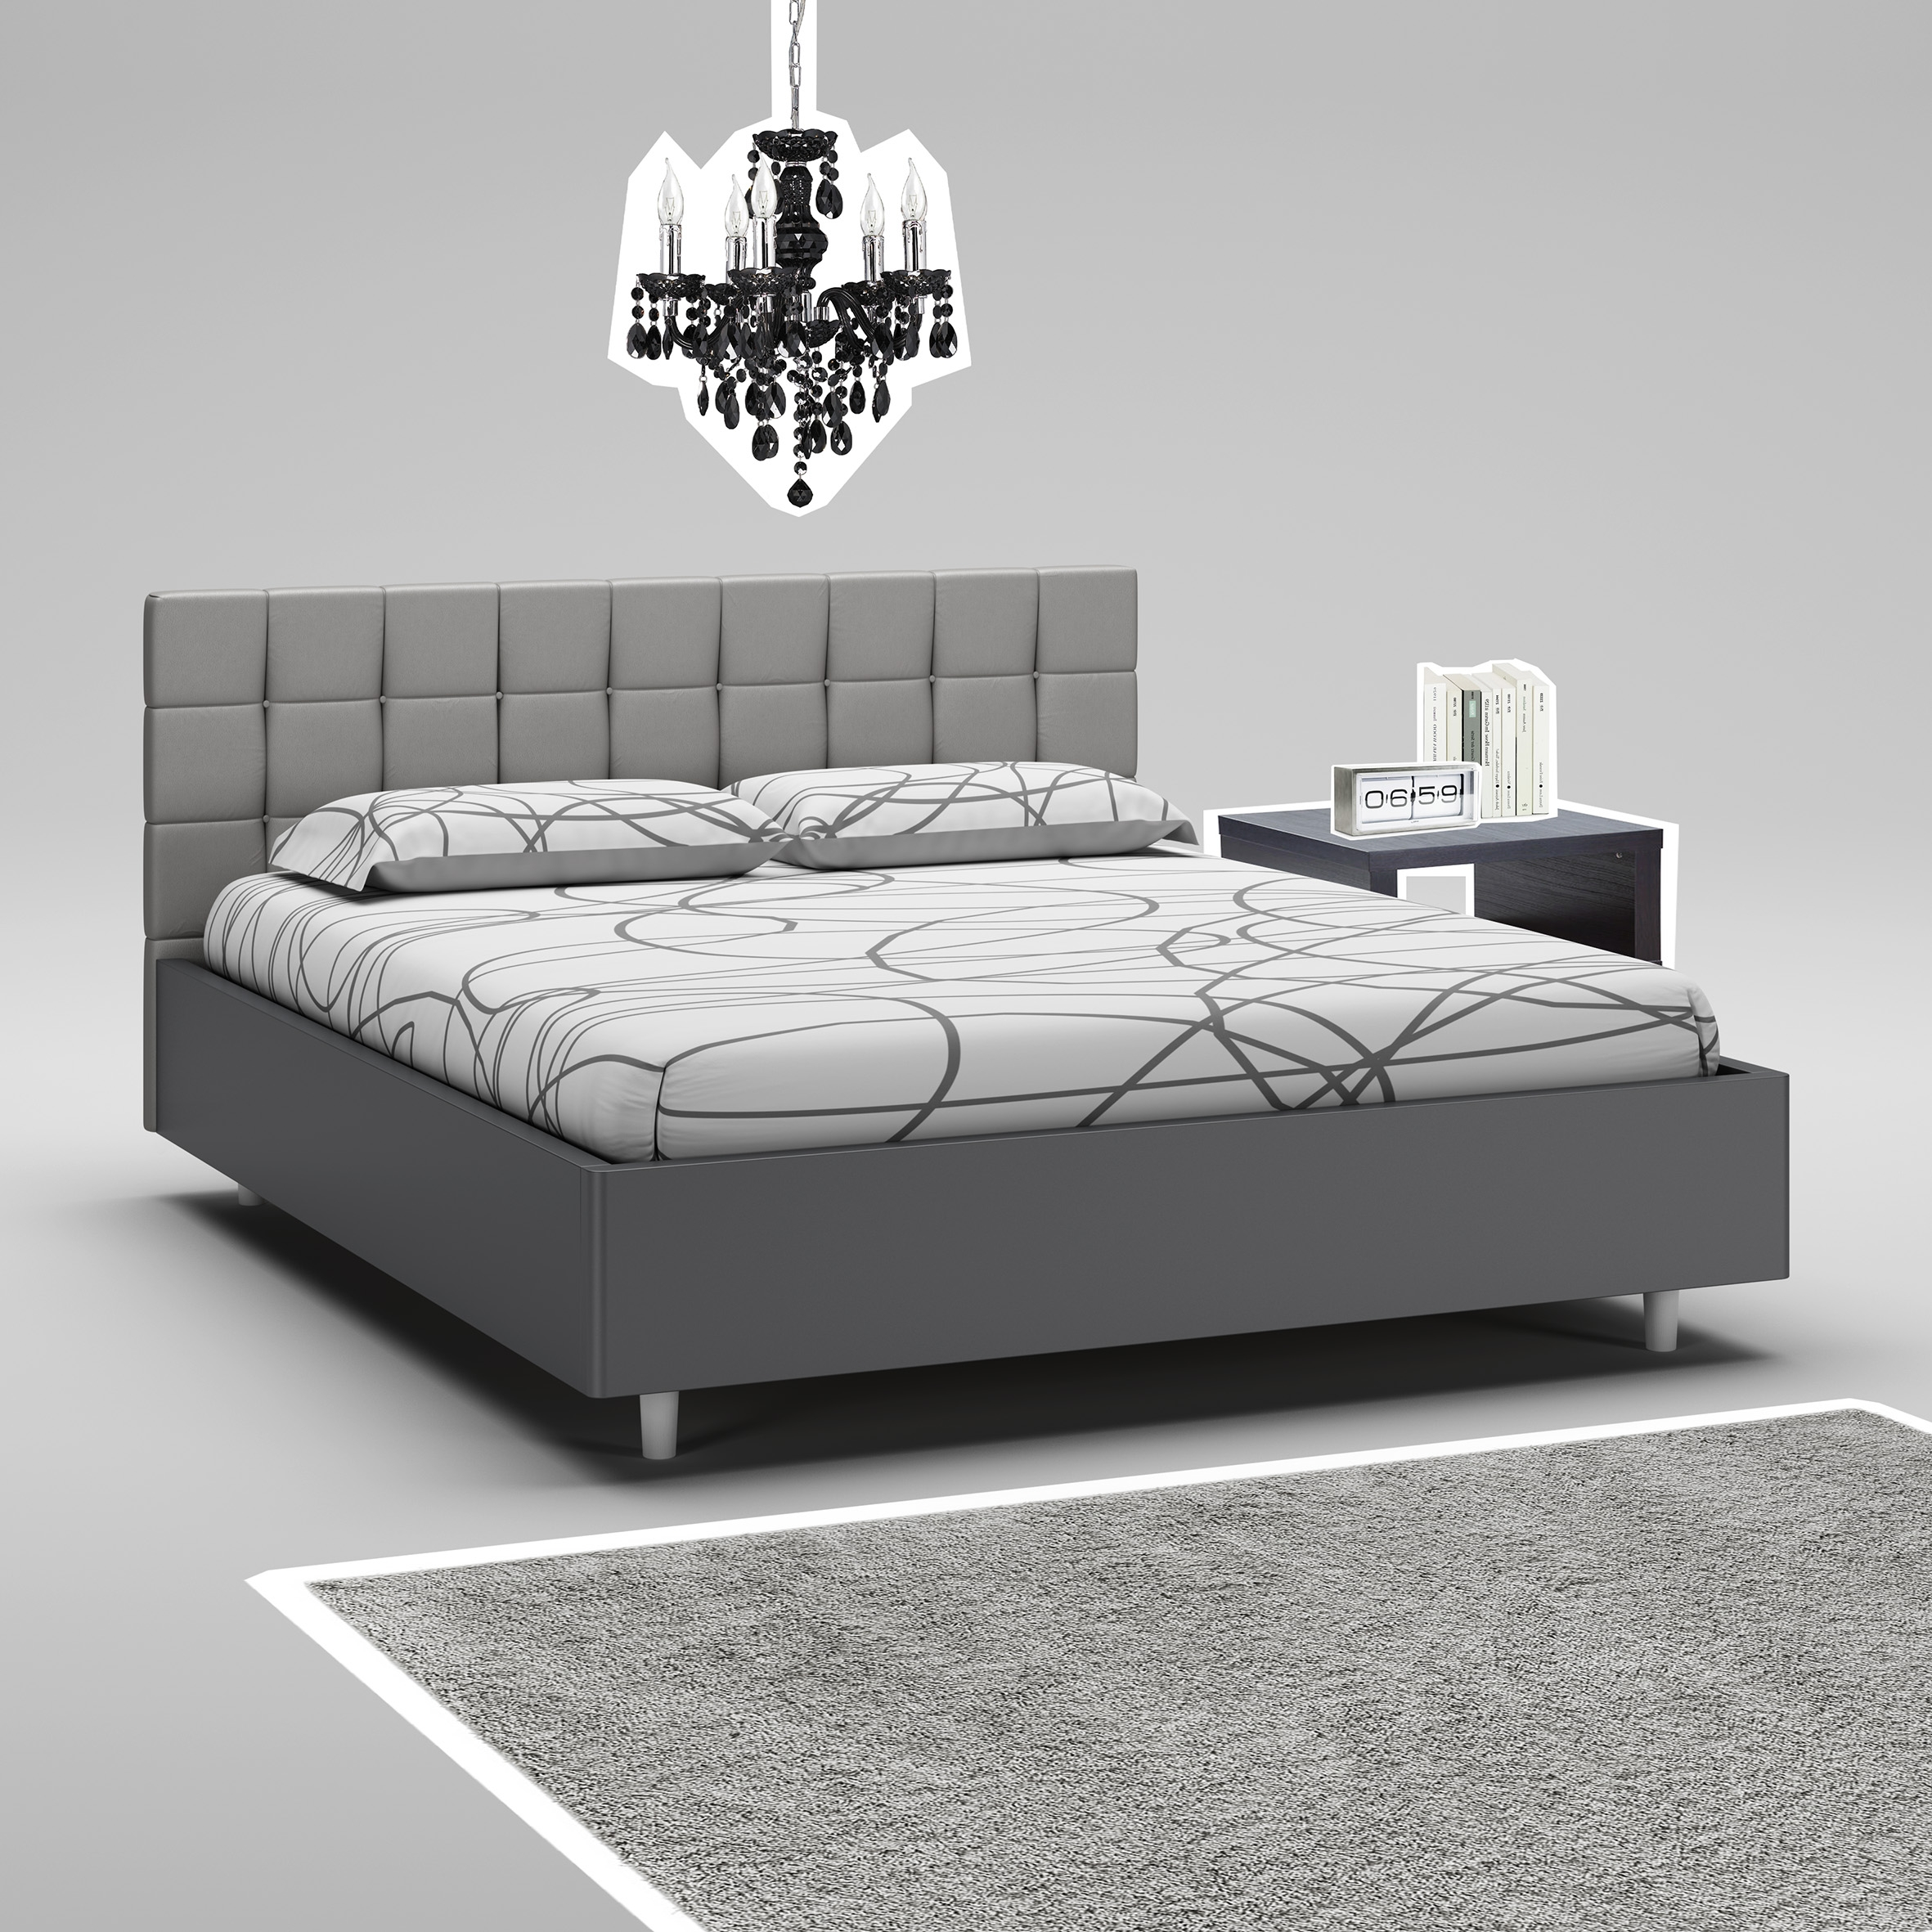 cadre de lit 140x190 pas cher maison design. Black Bedroom Furniture Sets. Home Design Ideas